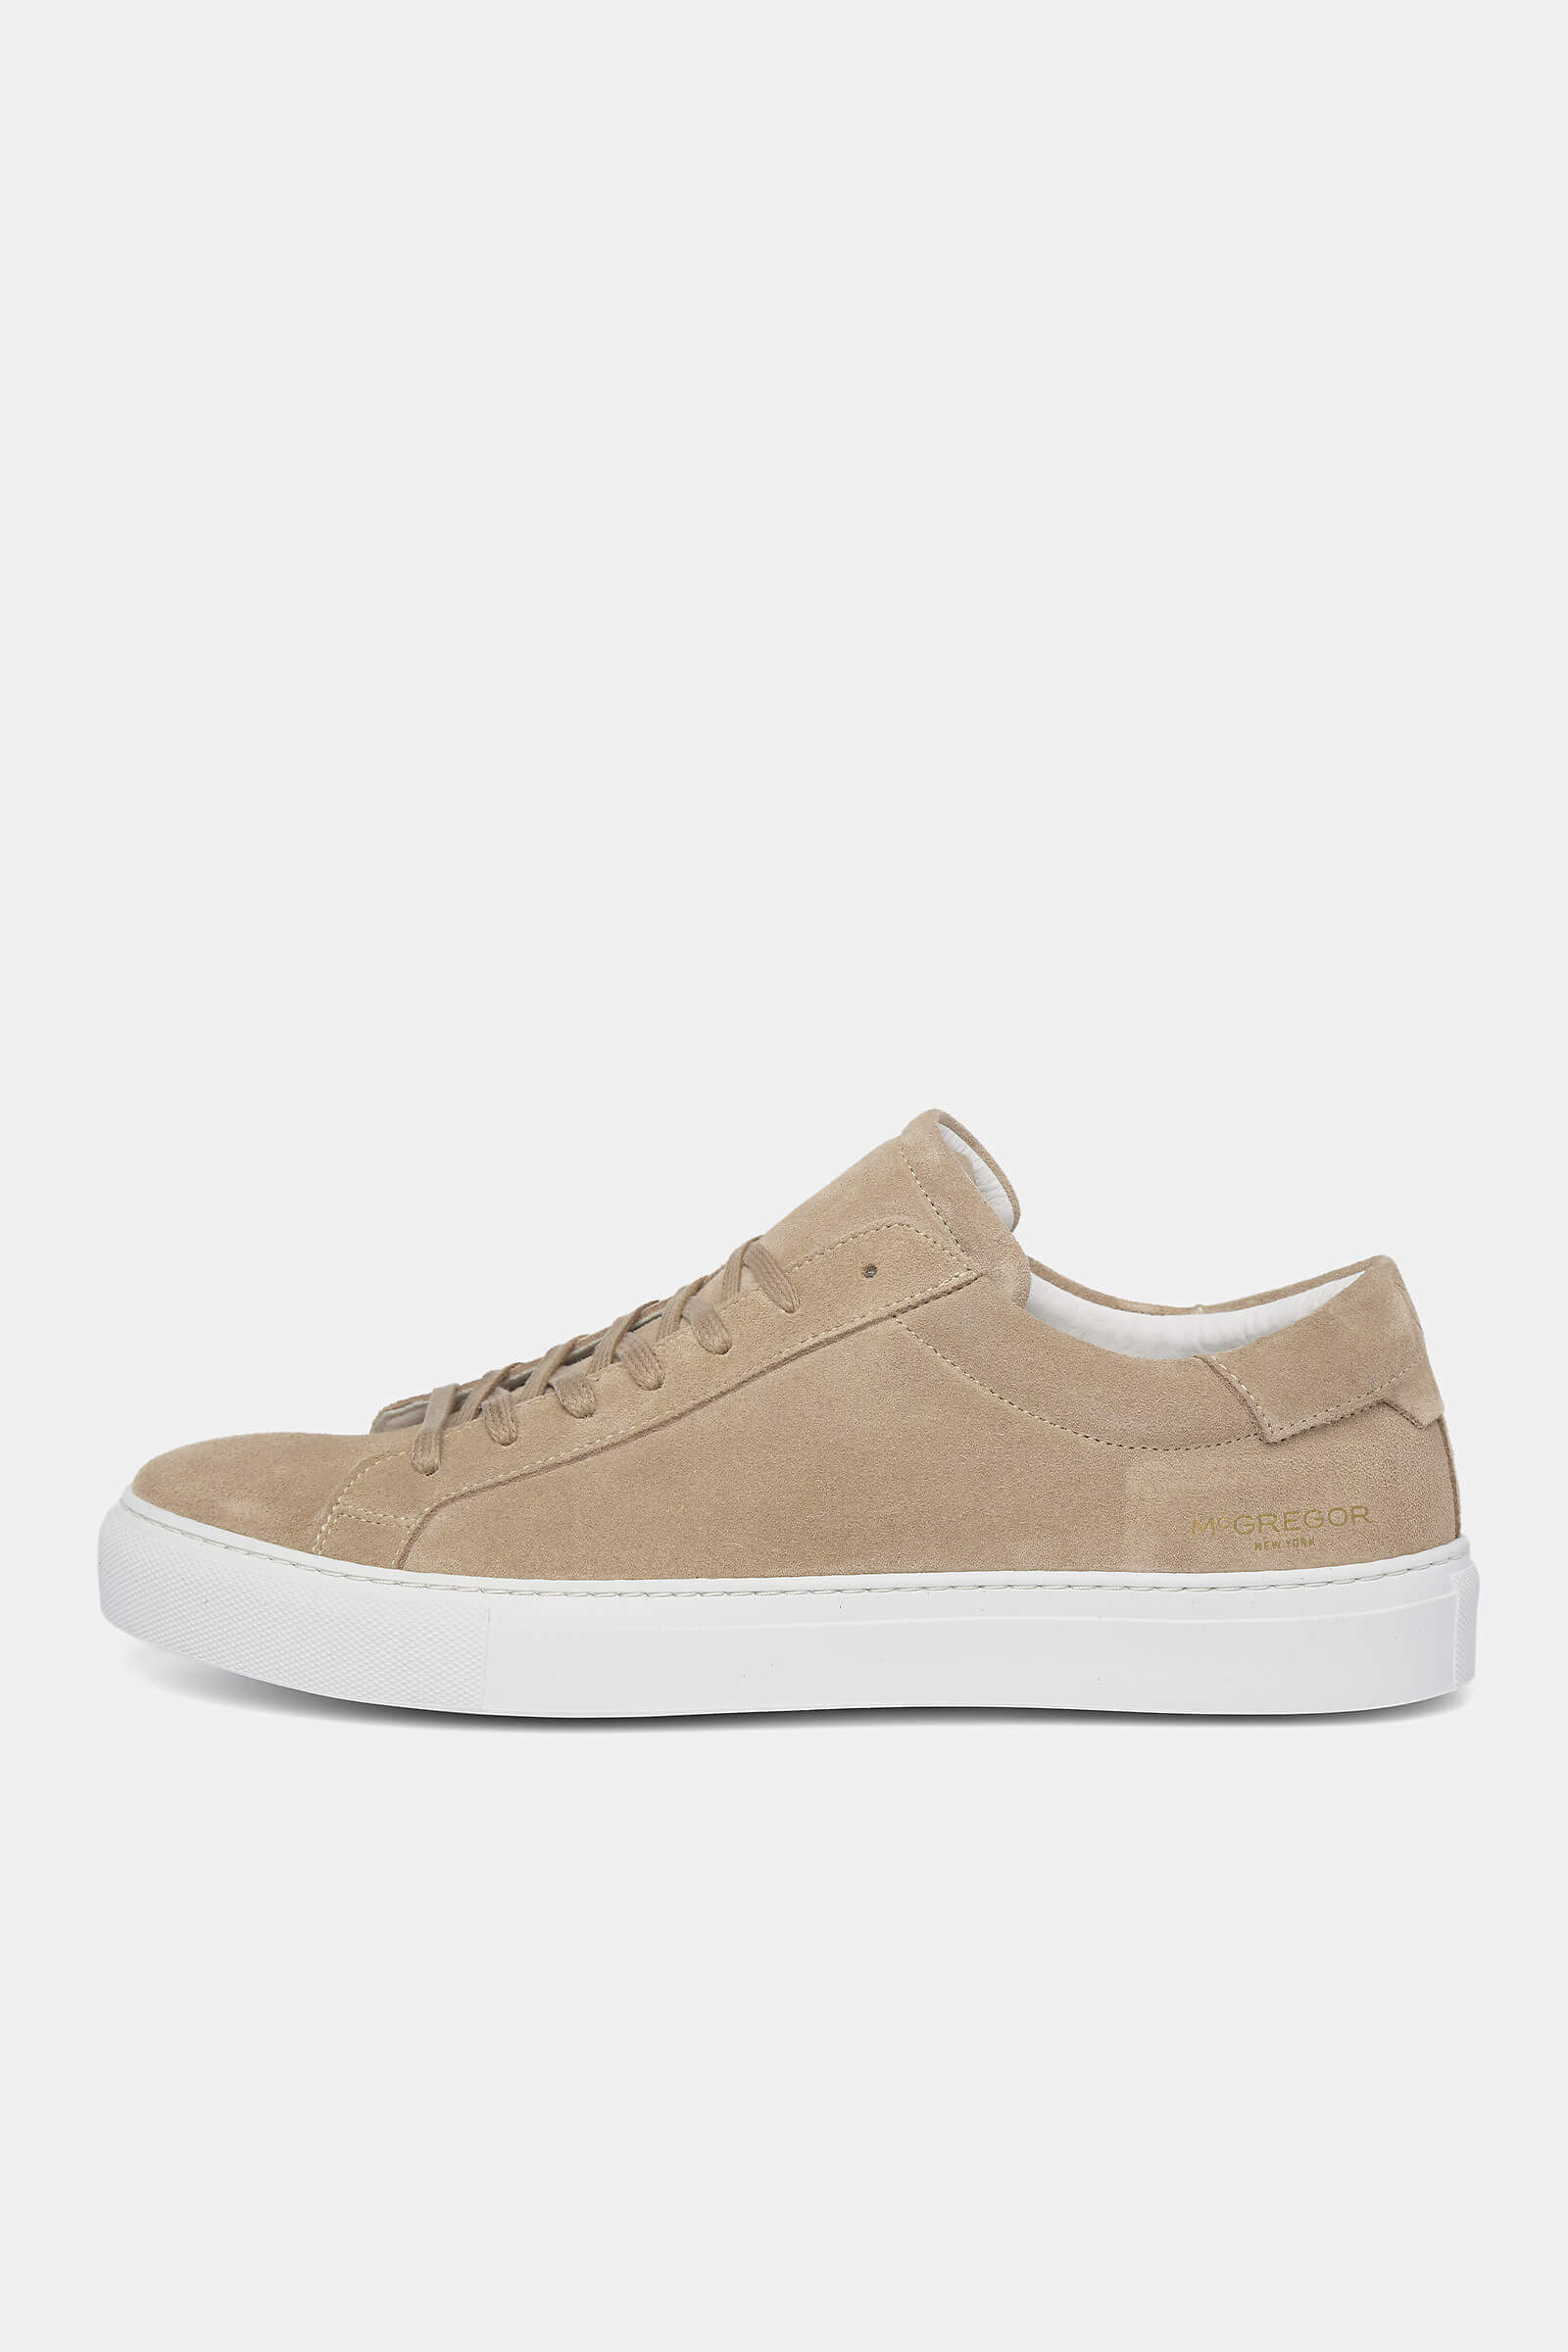 Light brown suede sneakers